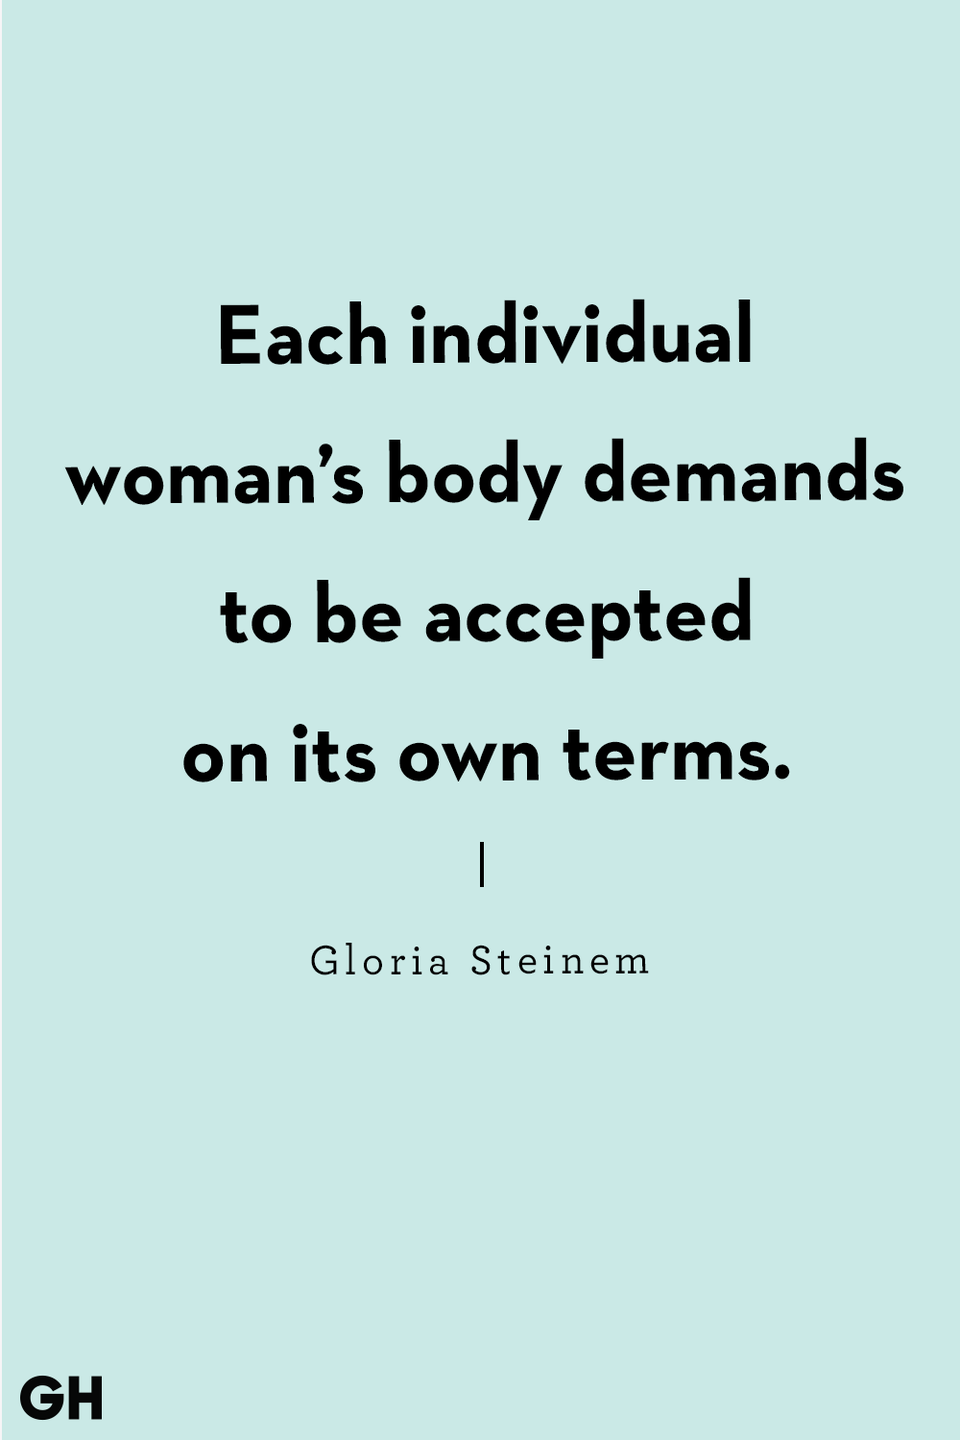 "<p>""Each individual woman's body demands to be accepted on its own terms."" </p>"